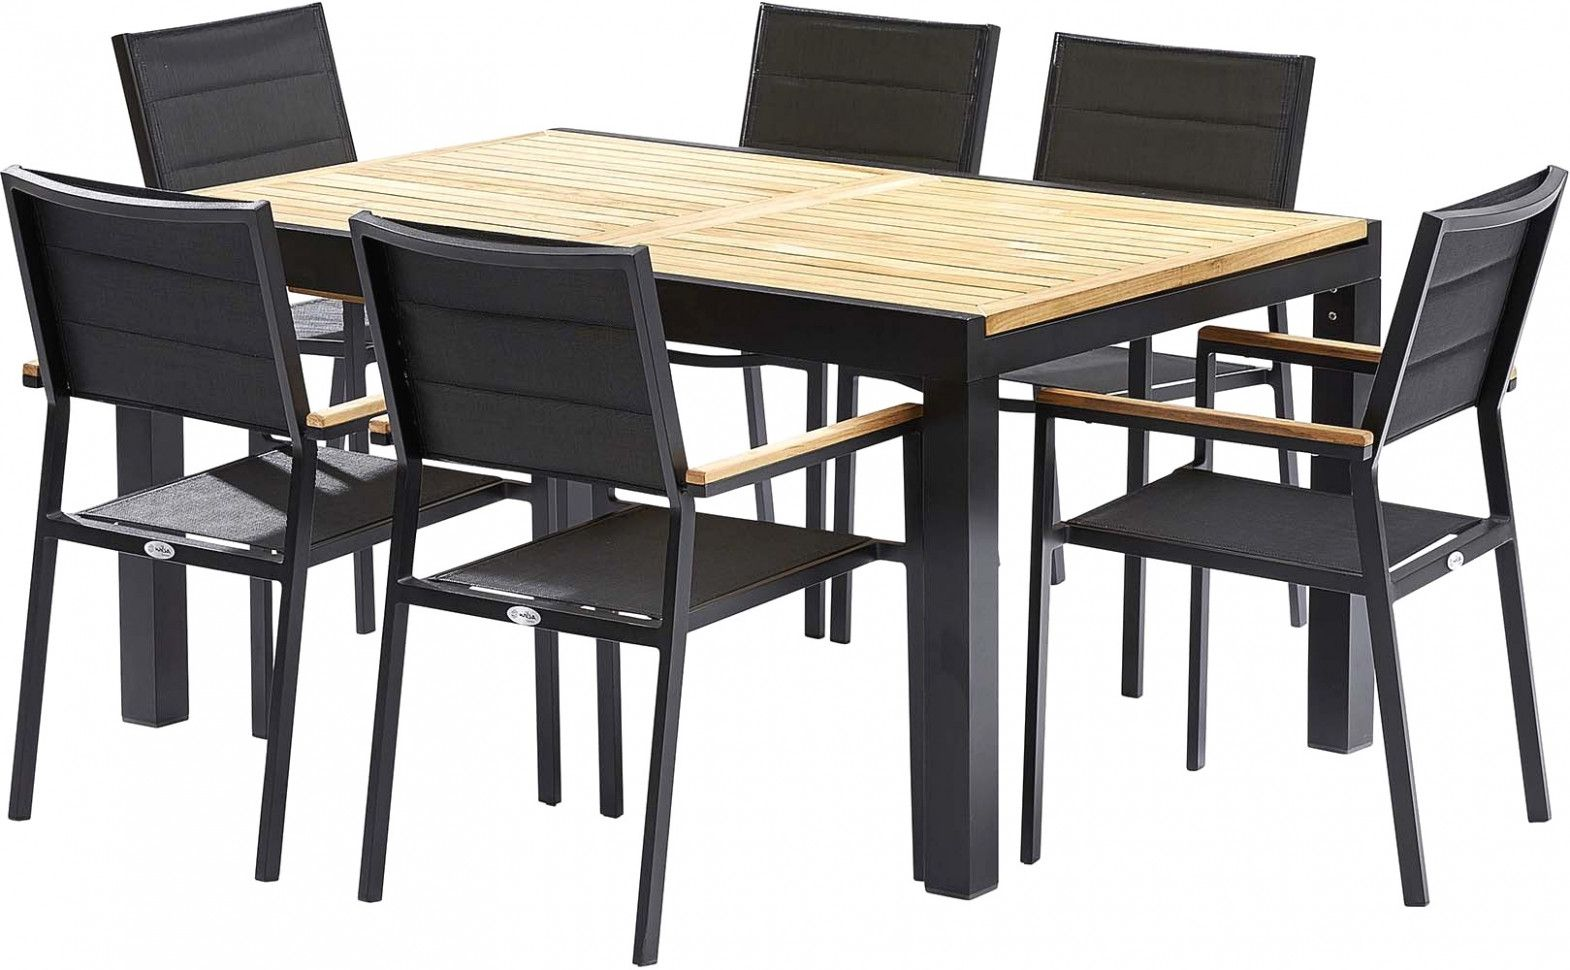 Table De Jardin With Images Table Outdoor Furniture Sets